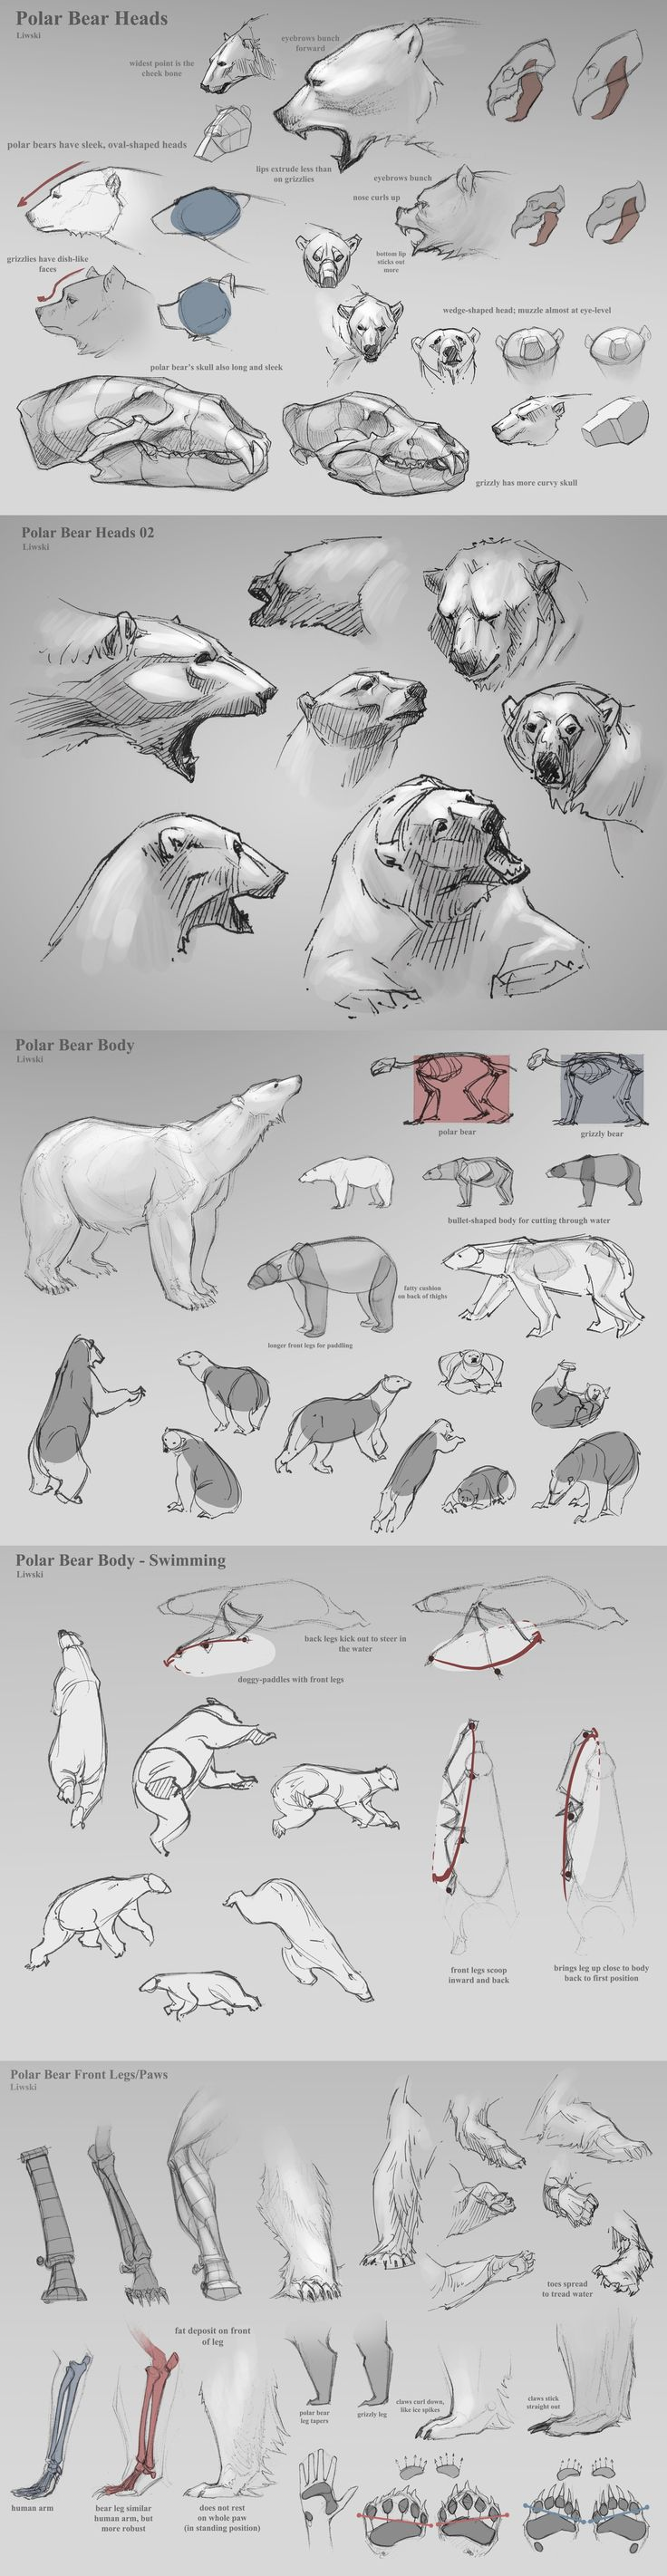 http://idk-how-to-art.tumblr.com/post/83884062511/zebrafeets-art-i-did-these-for-my-animal